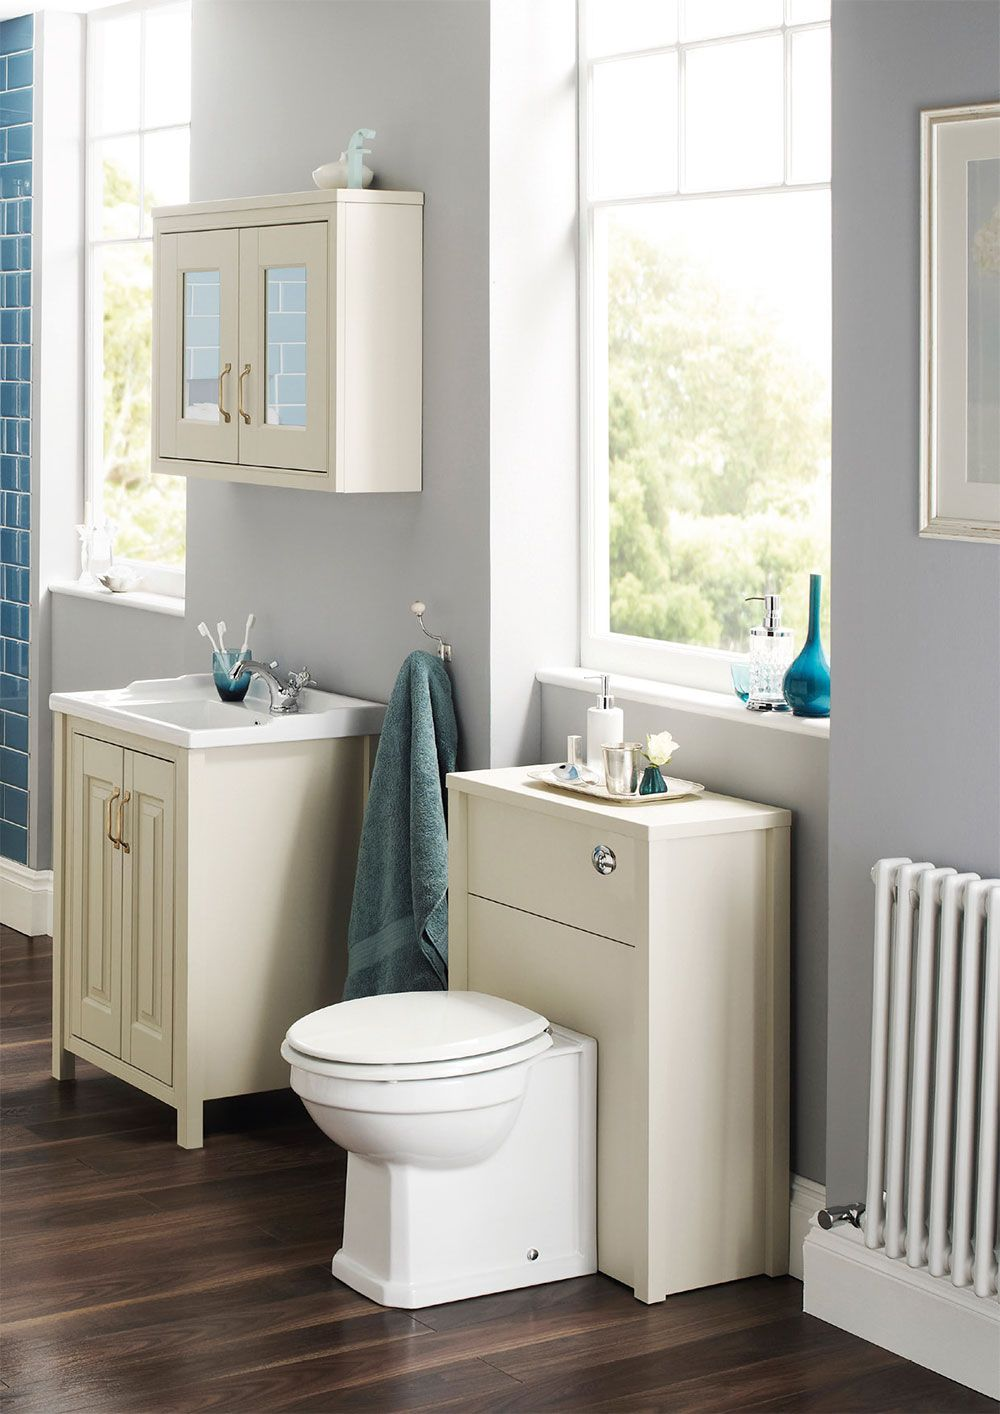 If you are looking for bathroom furniture 9